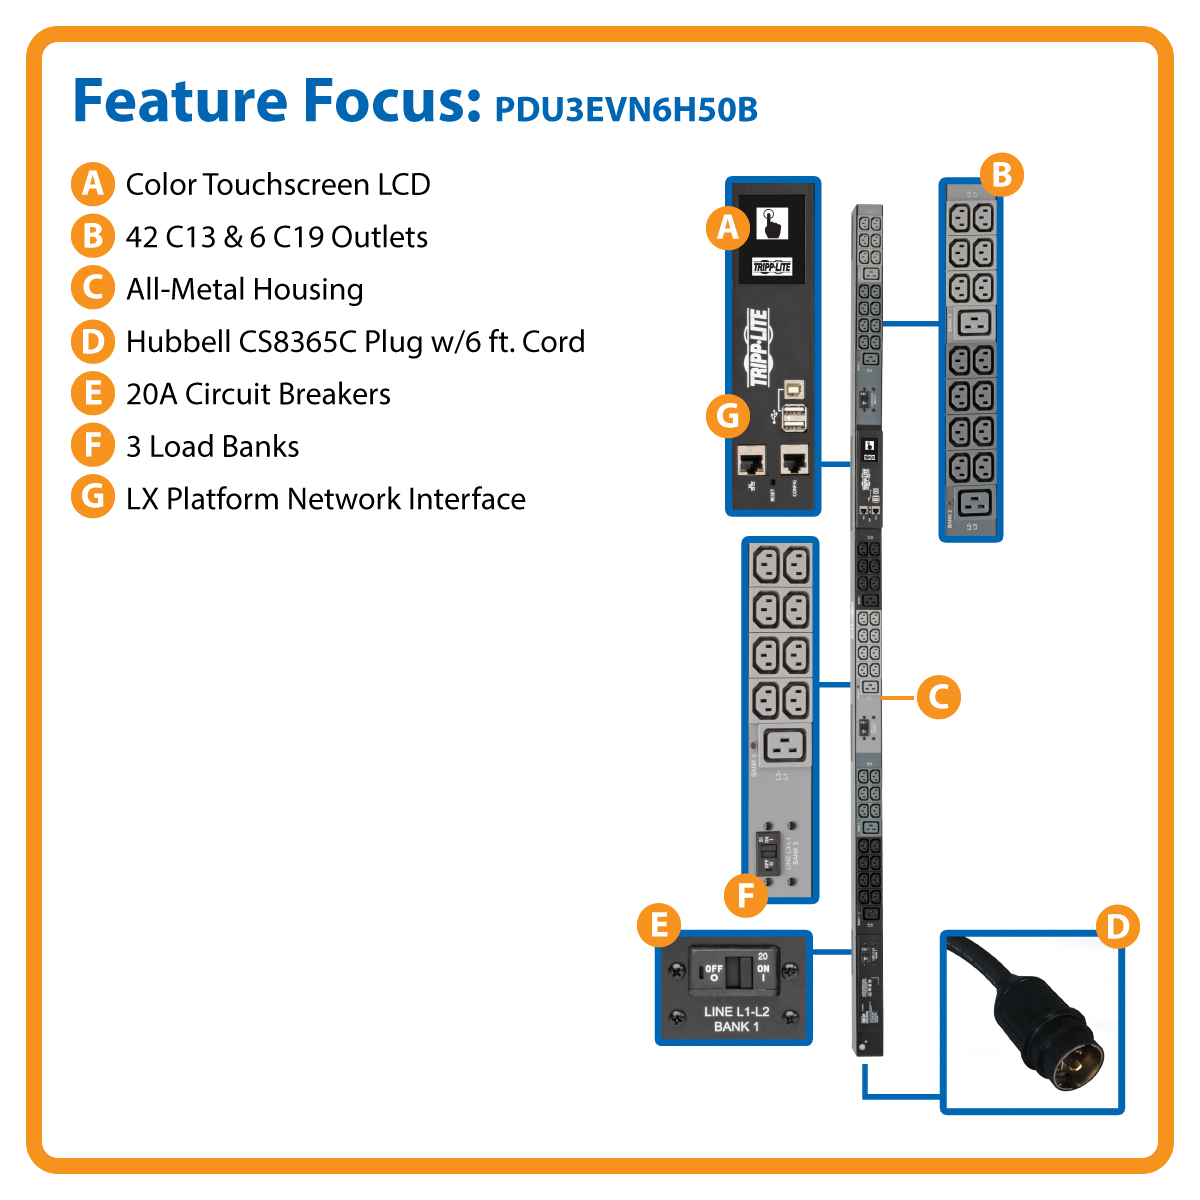 Tripp Lite Pdu 3 Phase Monitored 200 208 240v 145kw 42 C13 6 C19 Hubbell Usb Wiring Diagram Maintain Complete Remote Access To Your Connected Devices From Anywhere 24 7